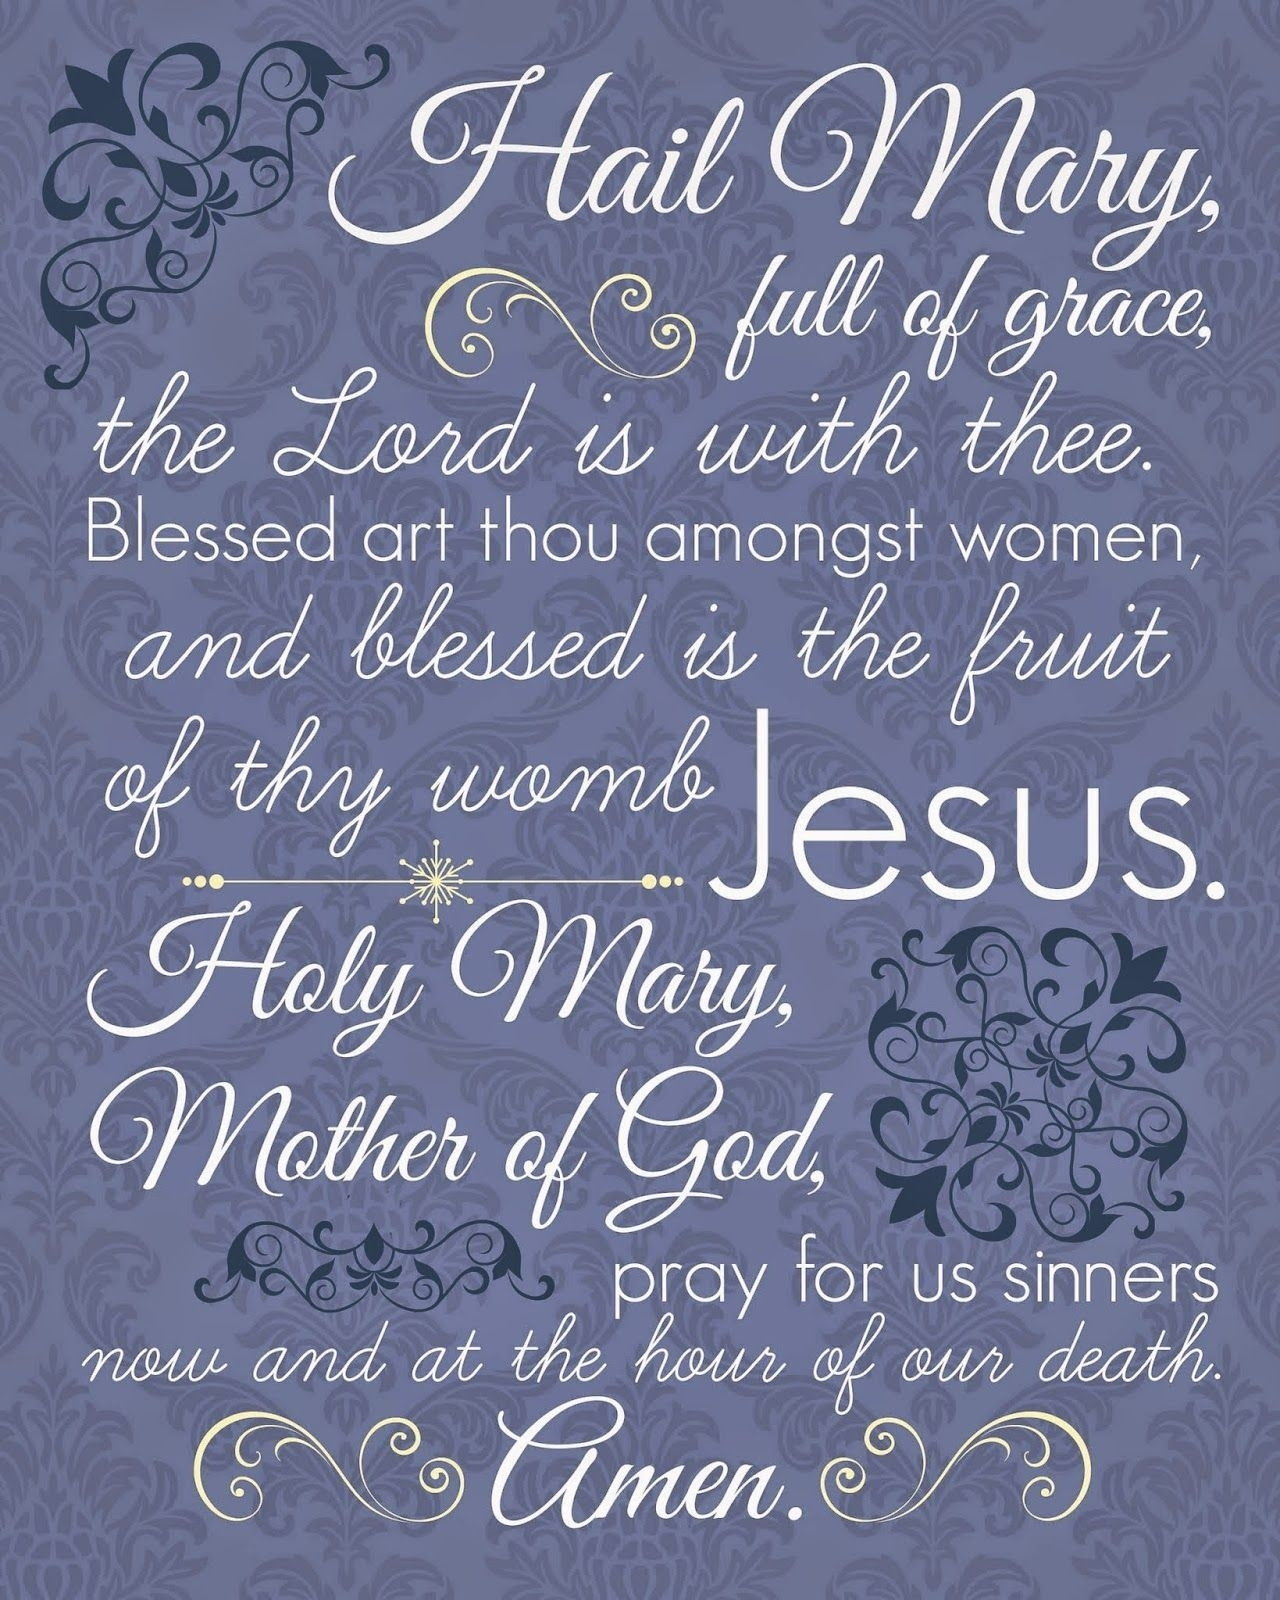 In Which There Are Seven Free Printable Prayers And So Many Other regarding Free Blessed Sunday Images Roman Catholic